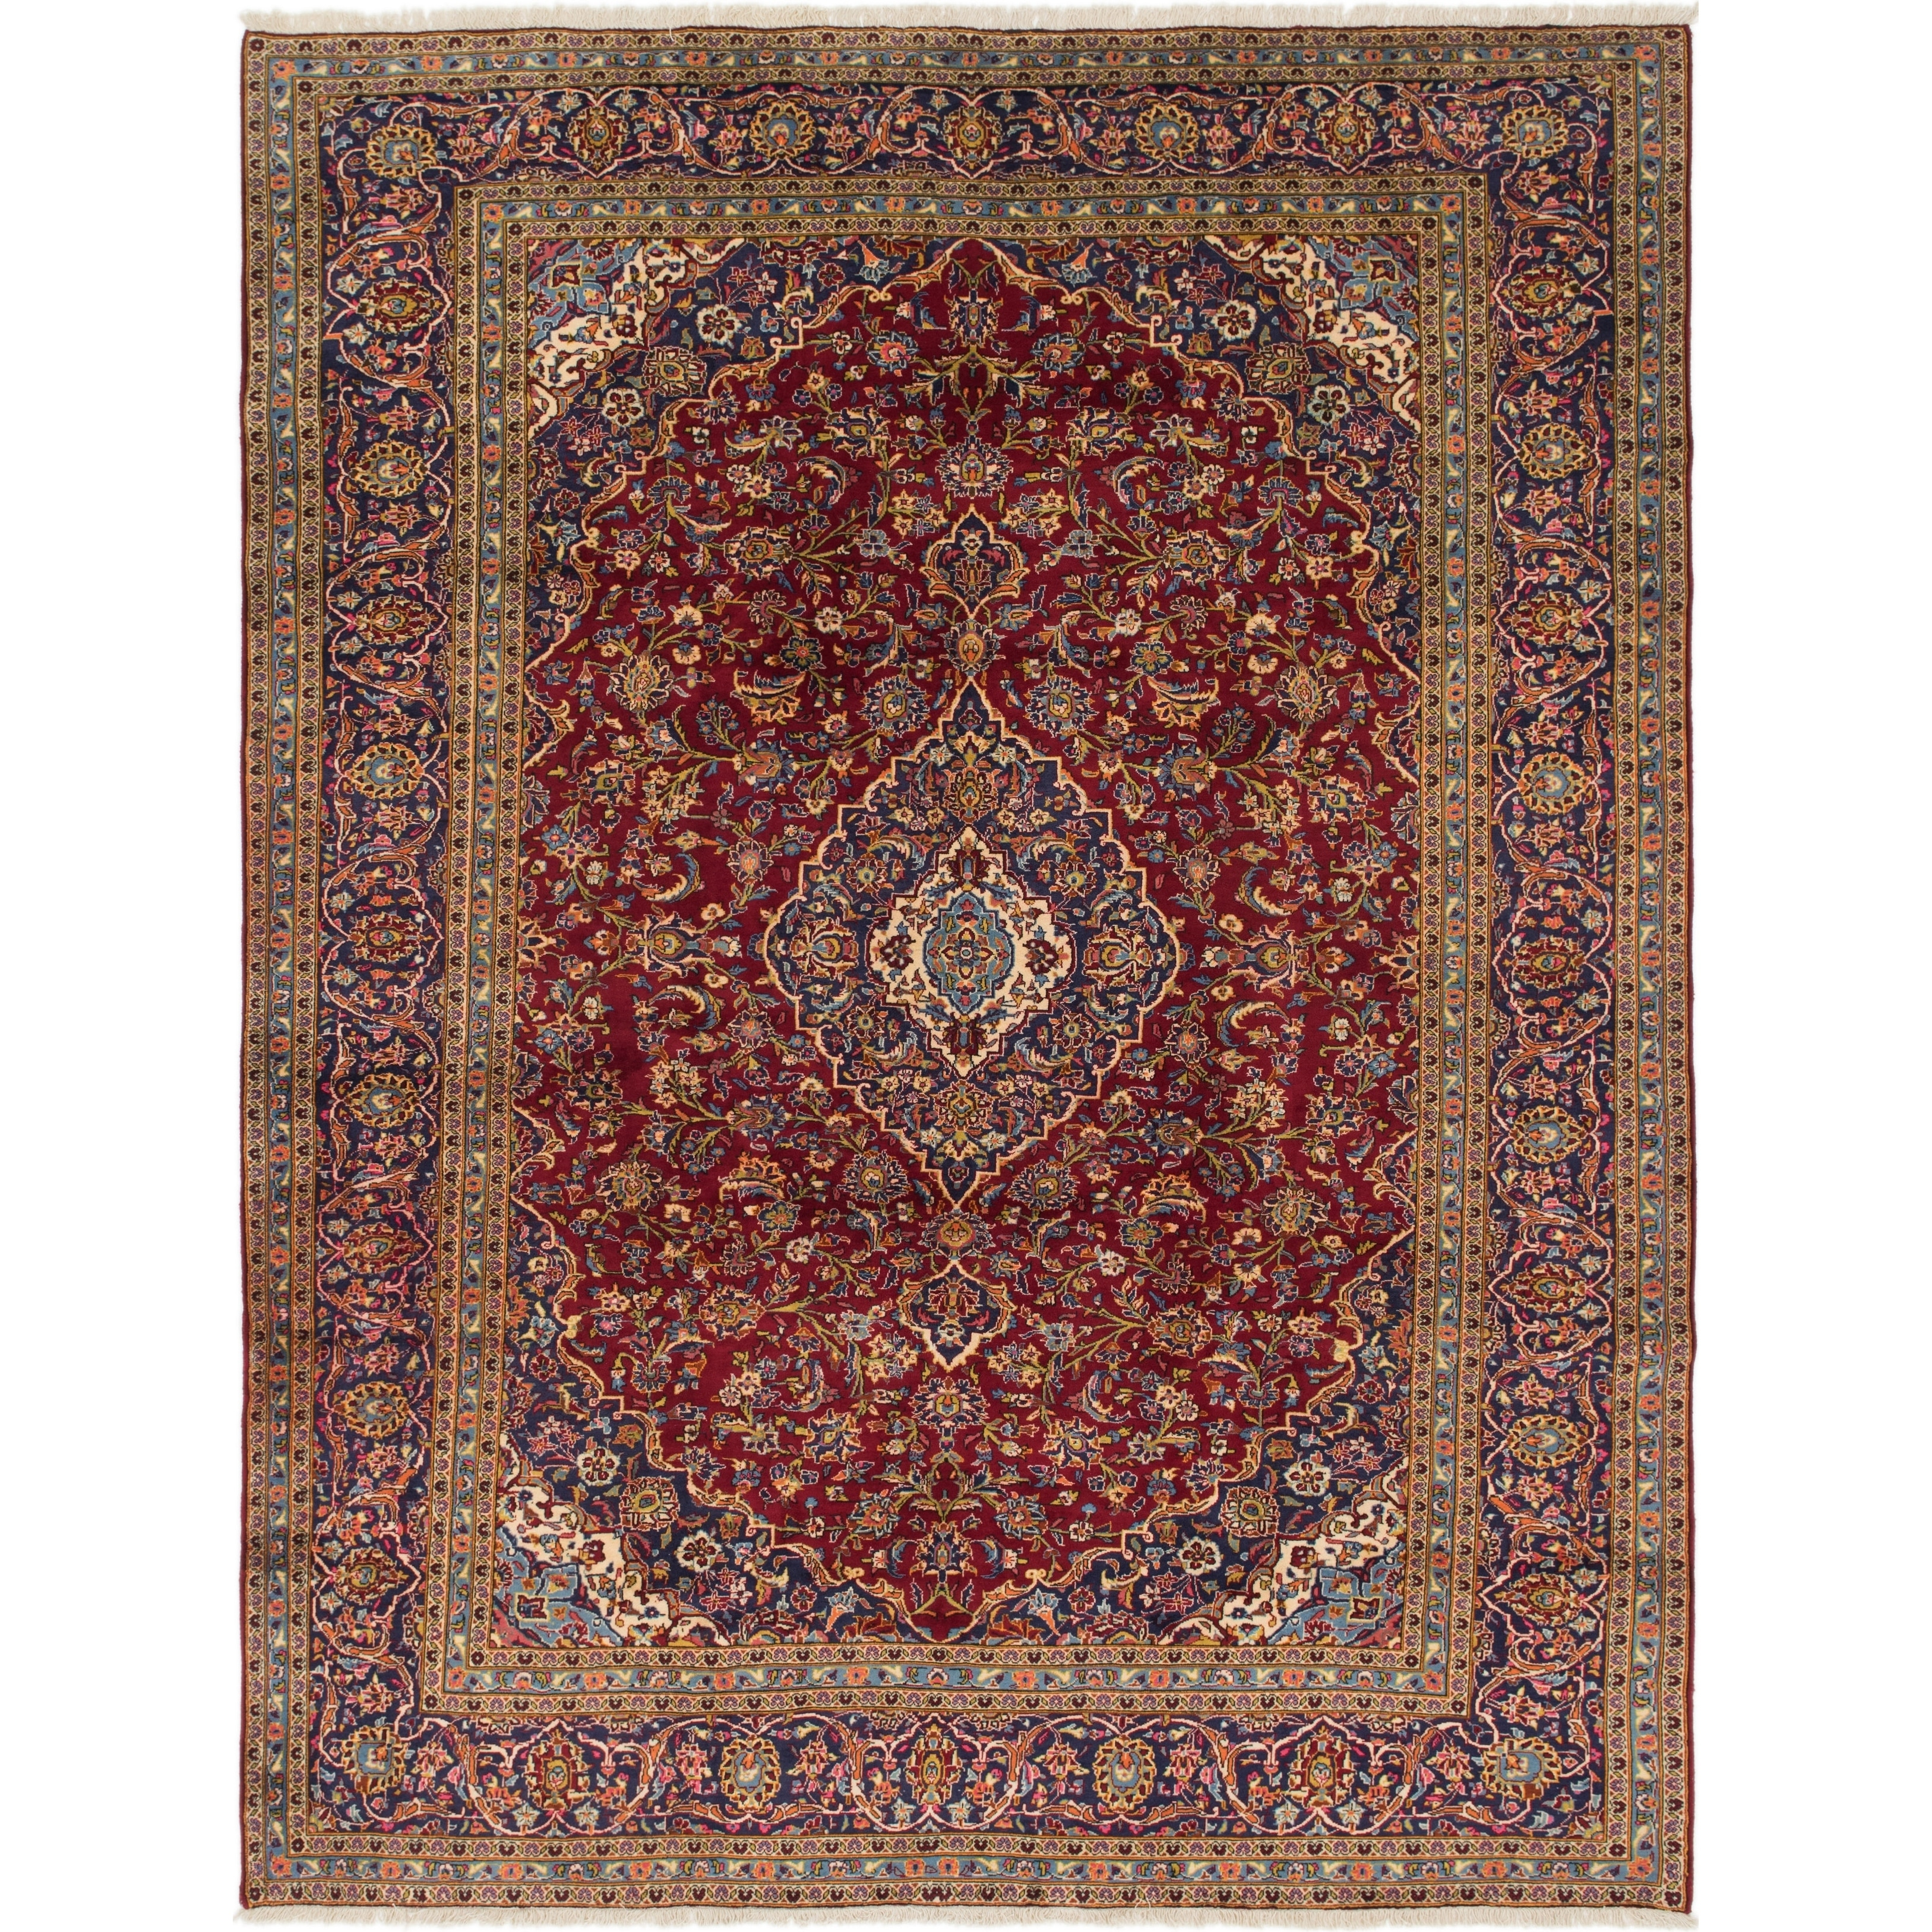 Hand Knotted Kashan Semi Antique Wool Area Rug - 9 8 x 12 8 (Red - 9 8 x 12 8)